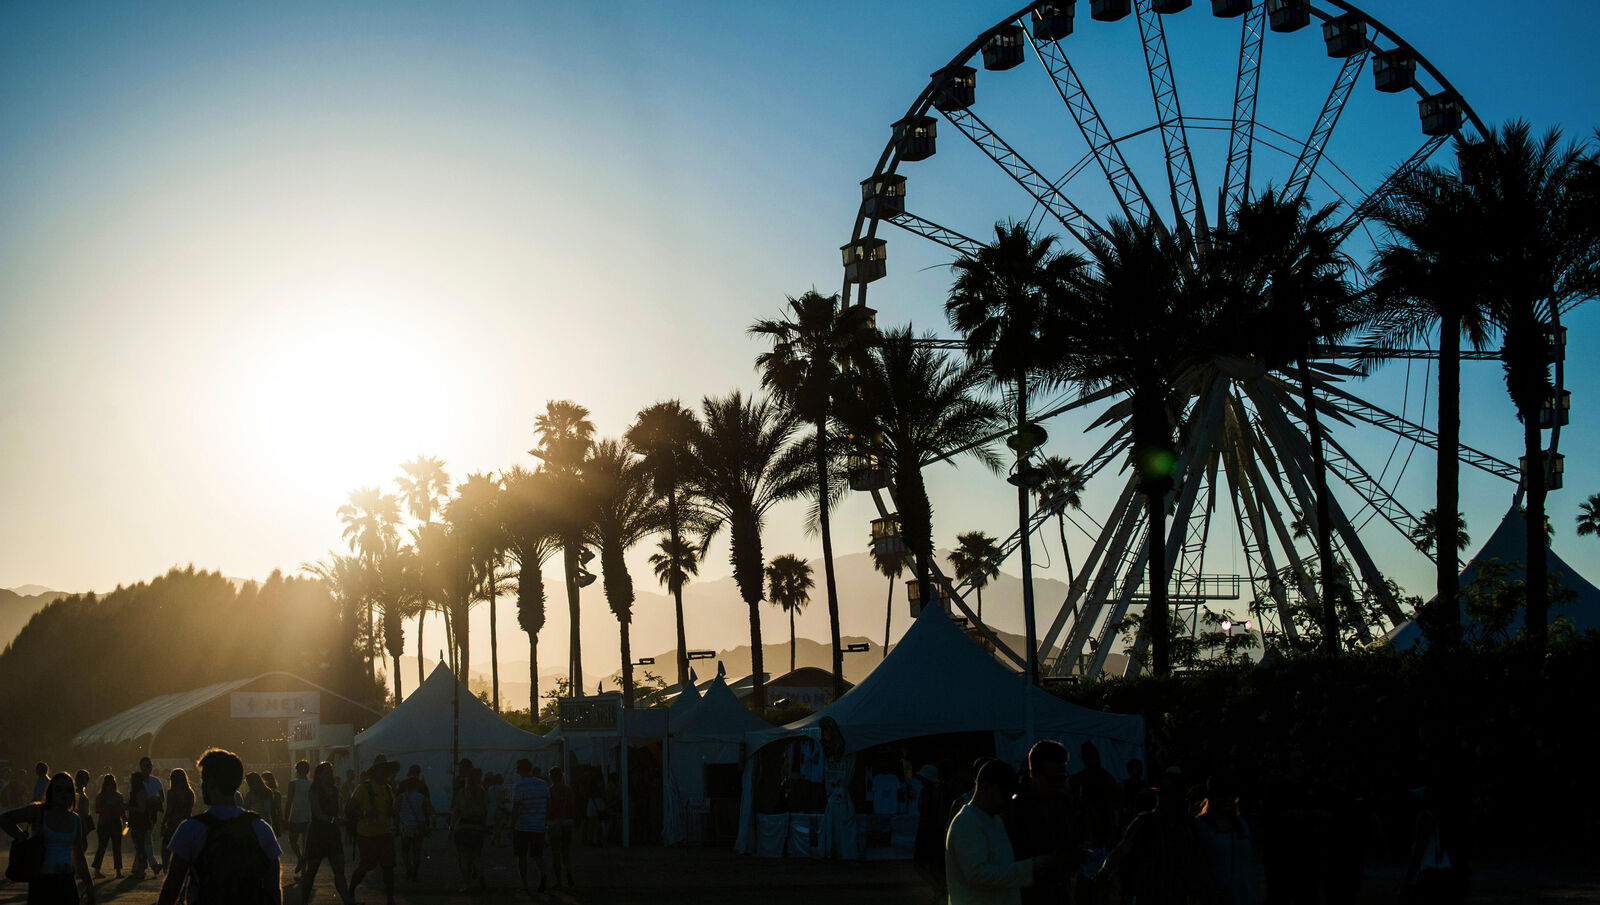 Coachella Music Festival Weekend 2 with Childish Gambino, Tame Impala, Ariana Grande, Kanye West and more Tickets (Apr 19-21)